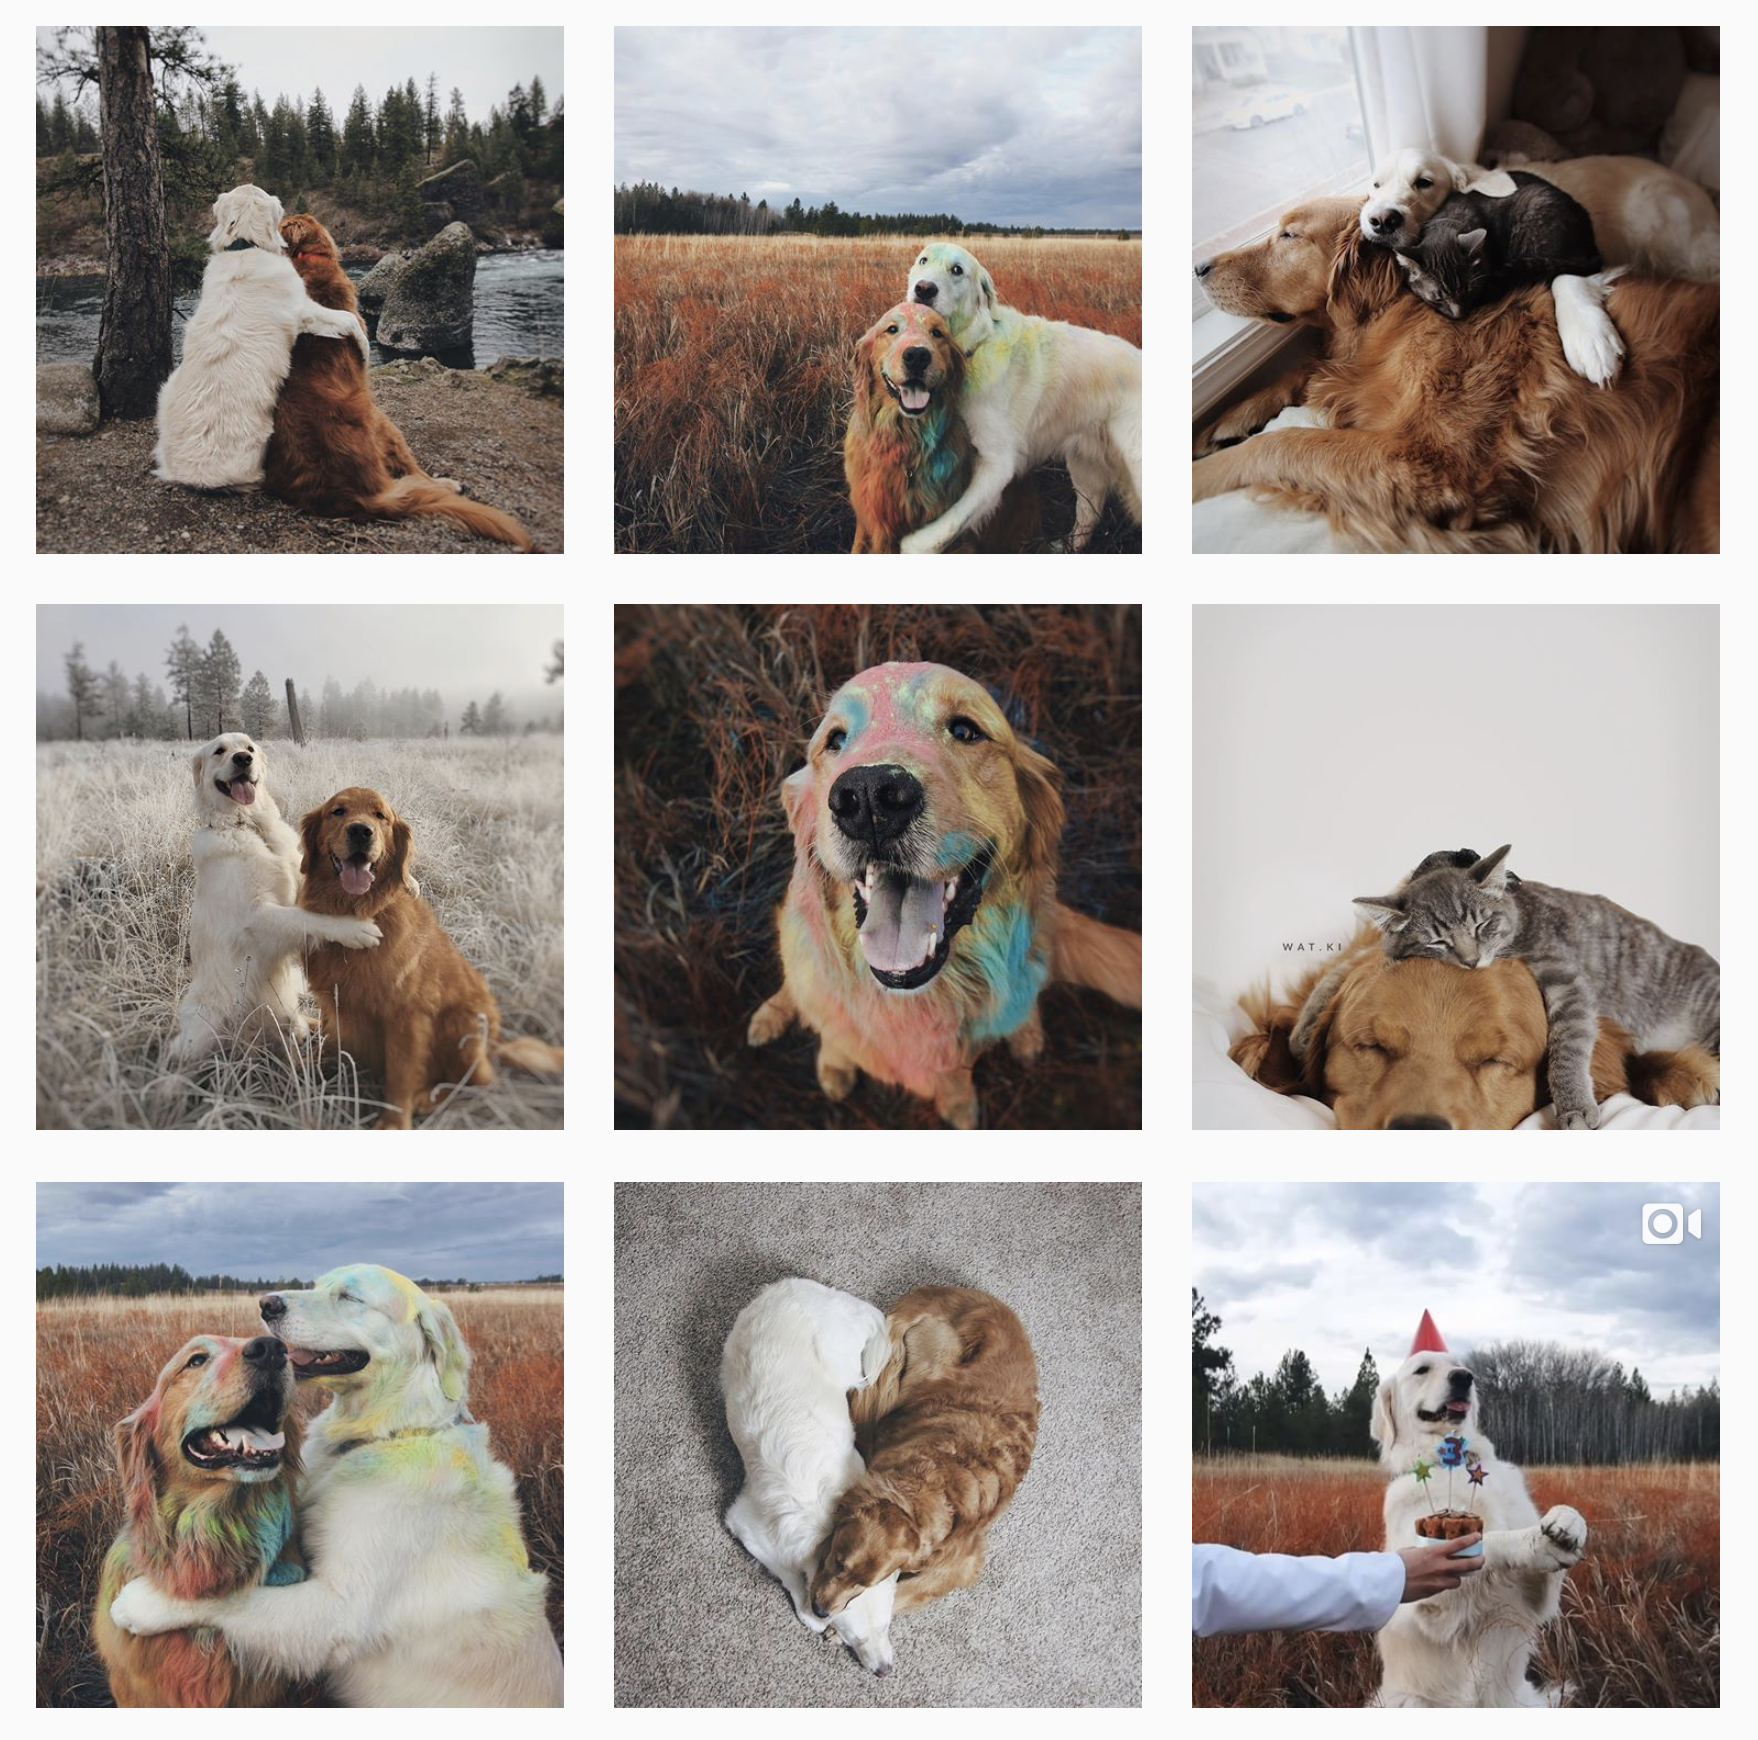 A photographer styled dog account such as this posts less frequently but has a cohesive aesthetic and professional-quality photos in each post.